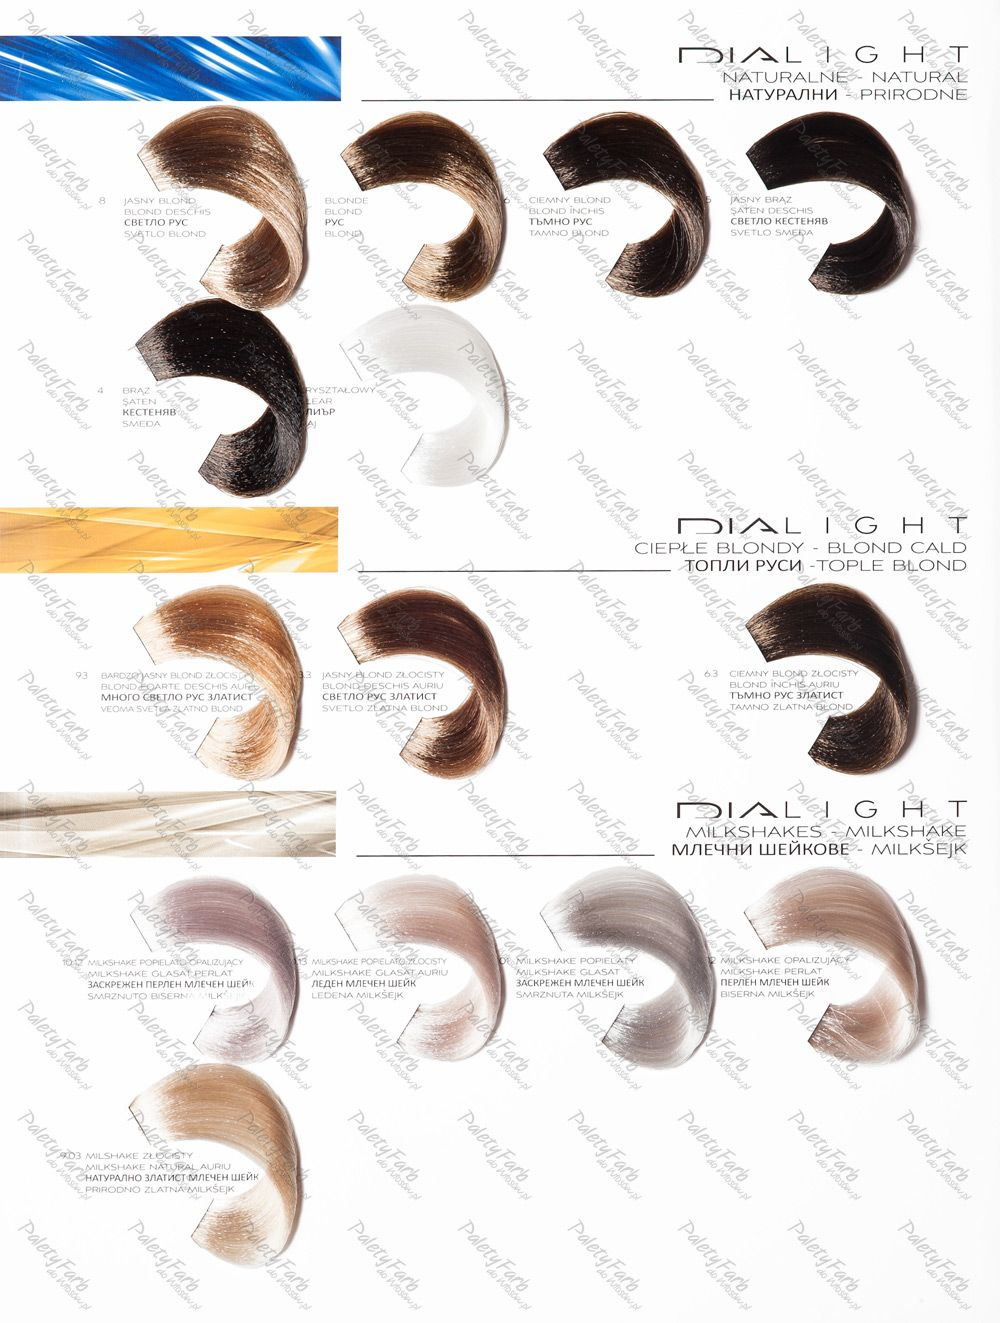 Loreal Dia Light 1 Blond And More In 2019